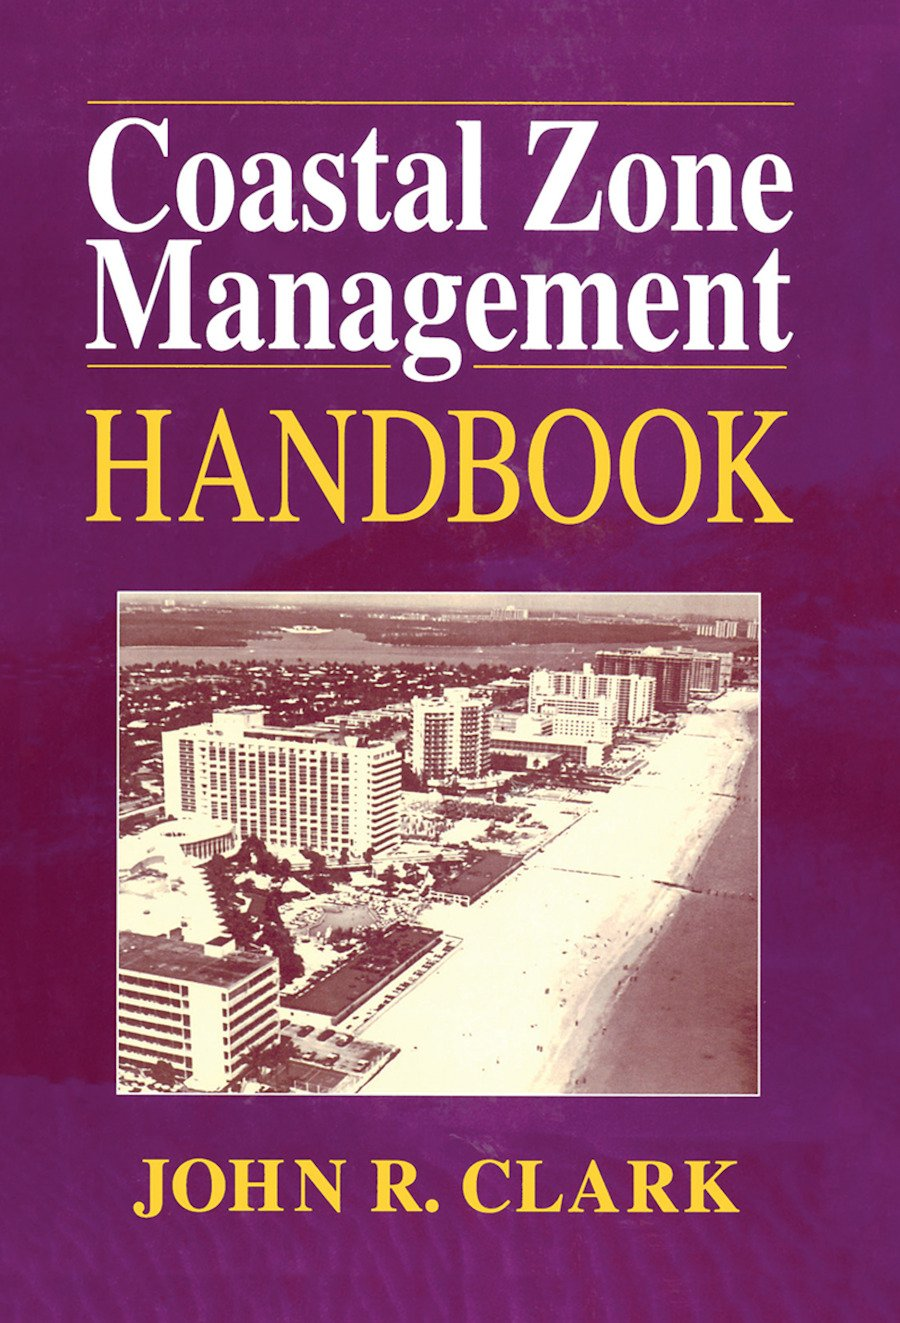 Coastal Zone Management Handbook: 1st Edition (Paperback) book cover